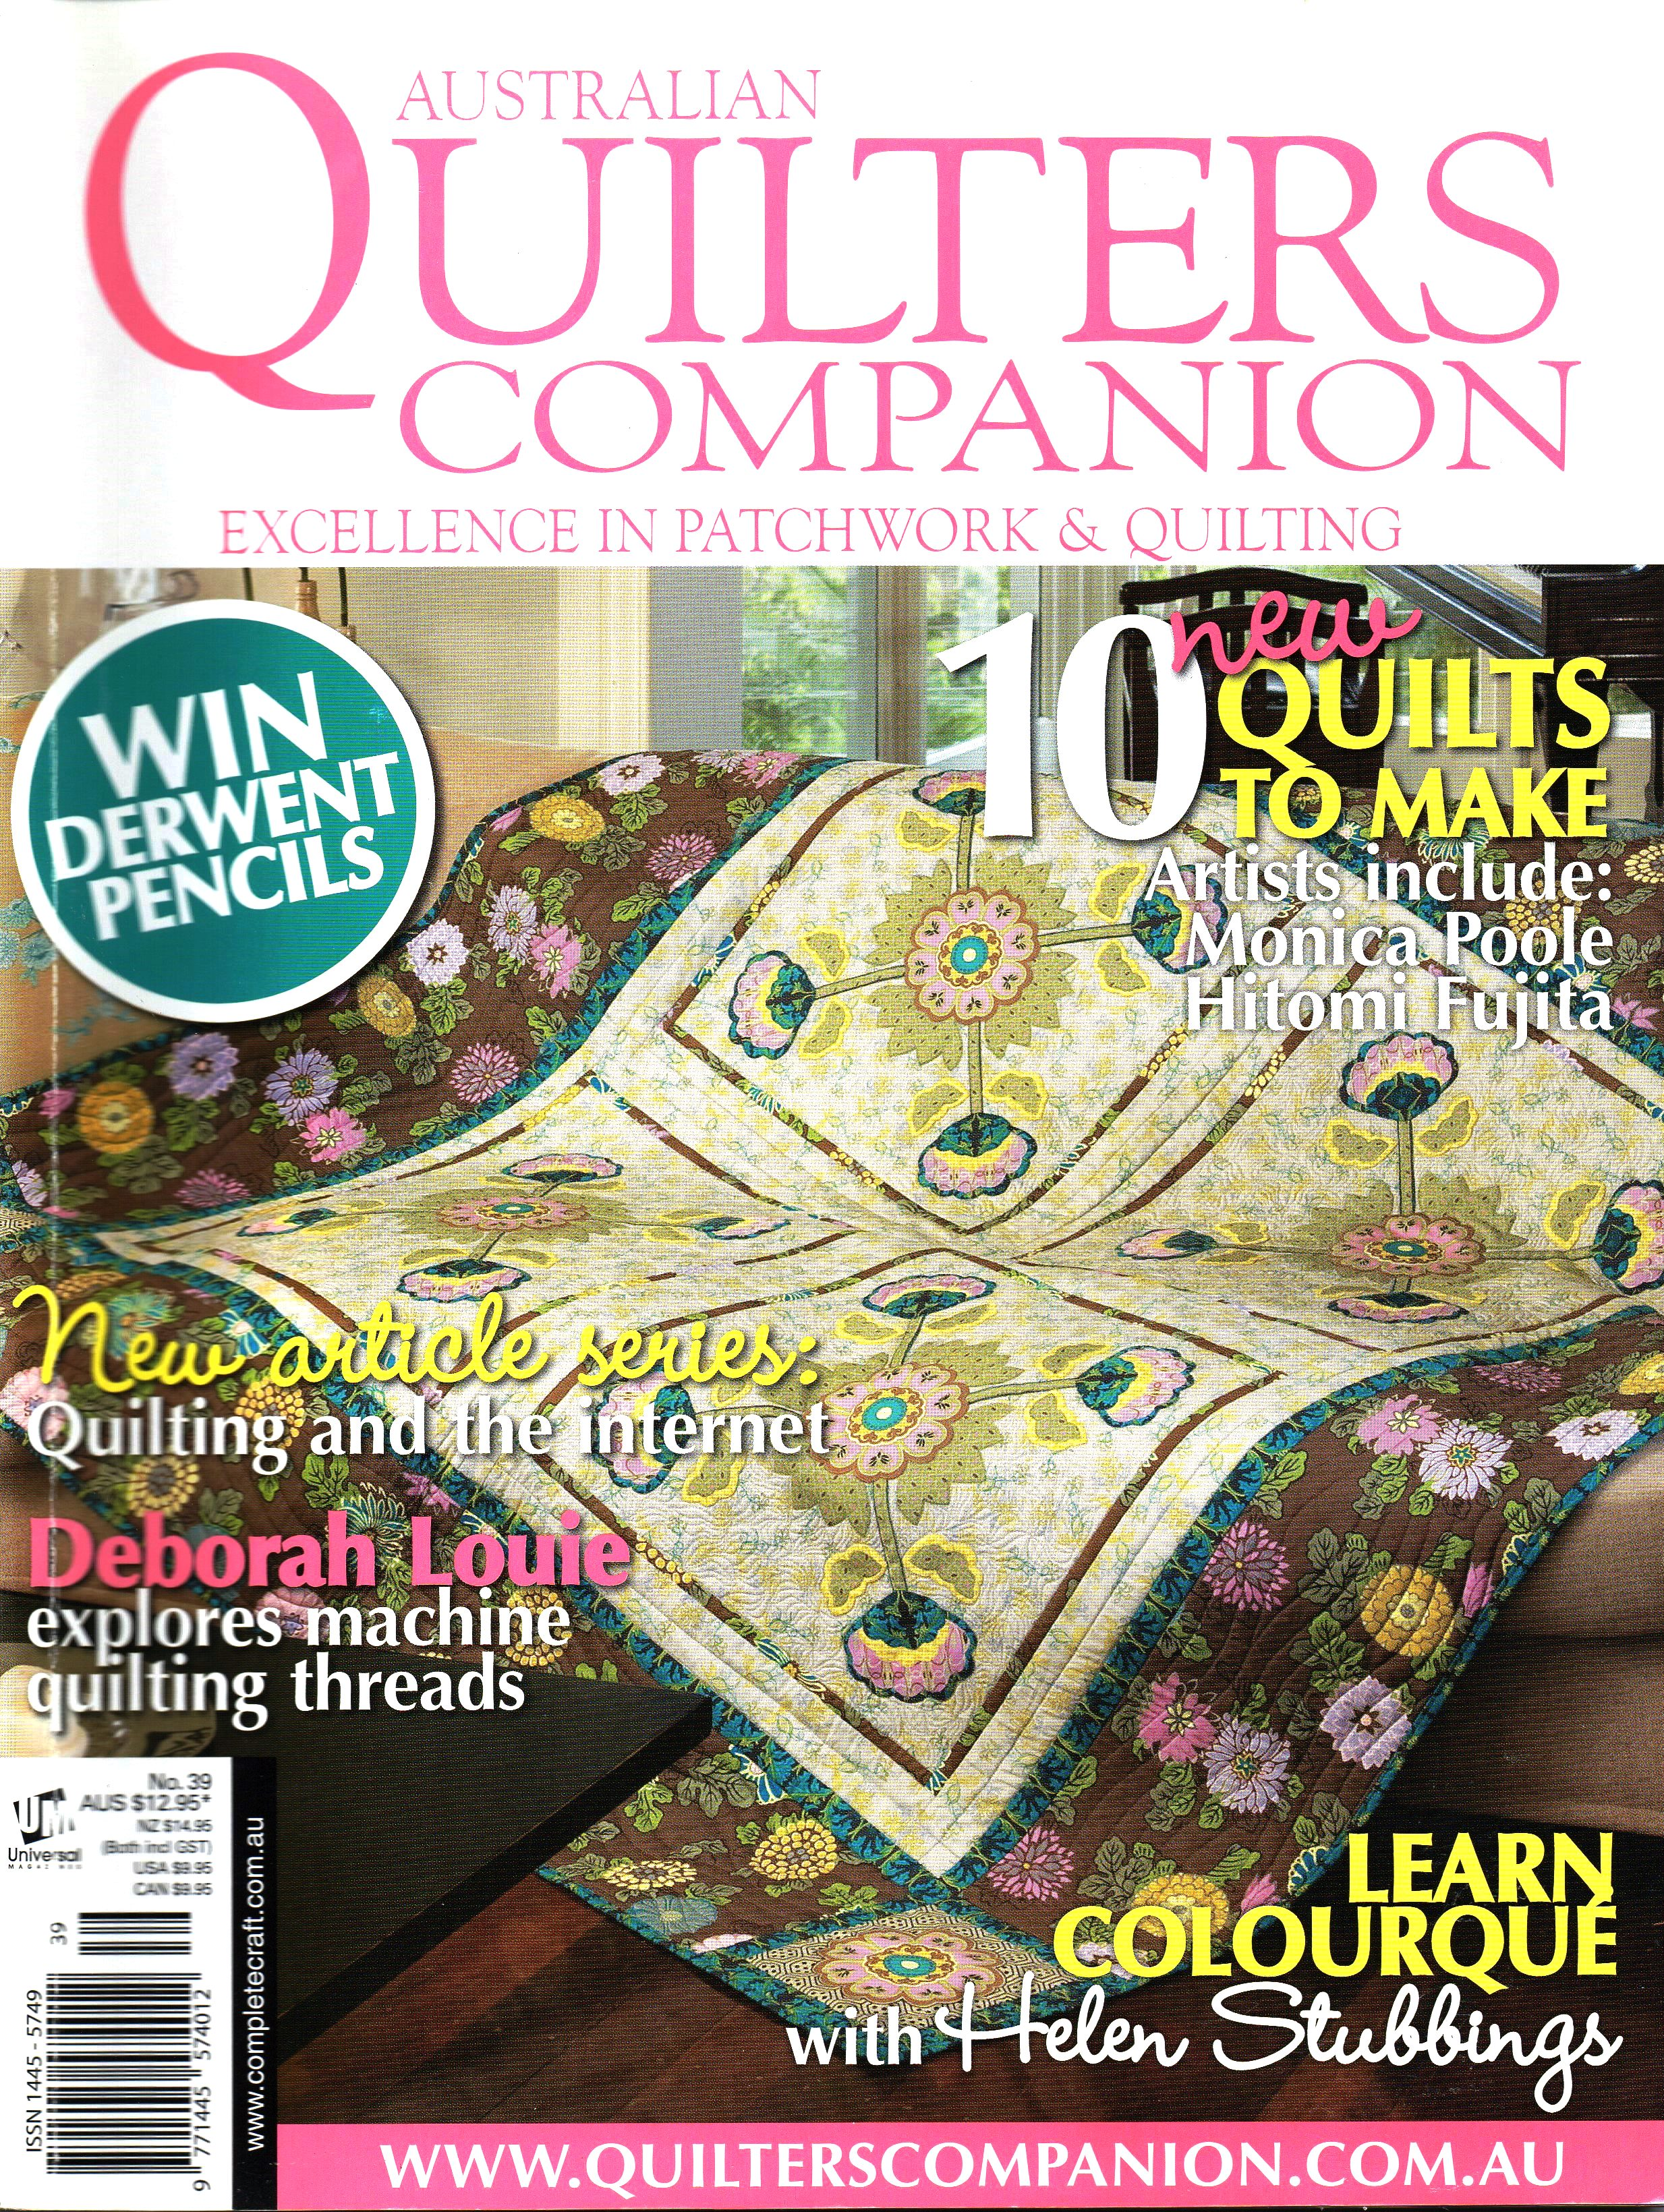 Quilters Companion 2009 #39